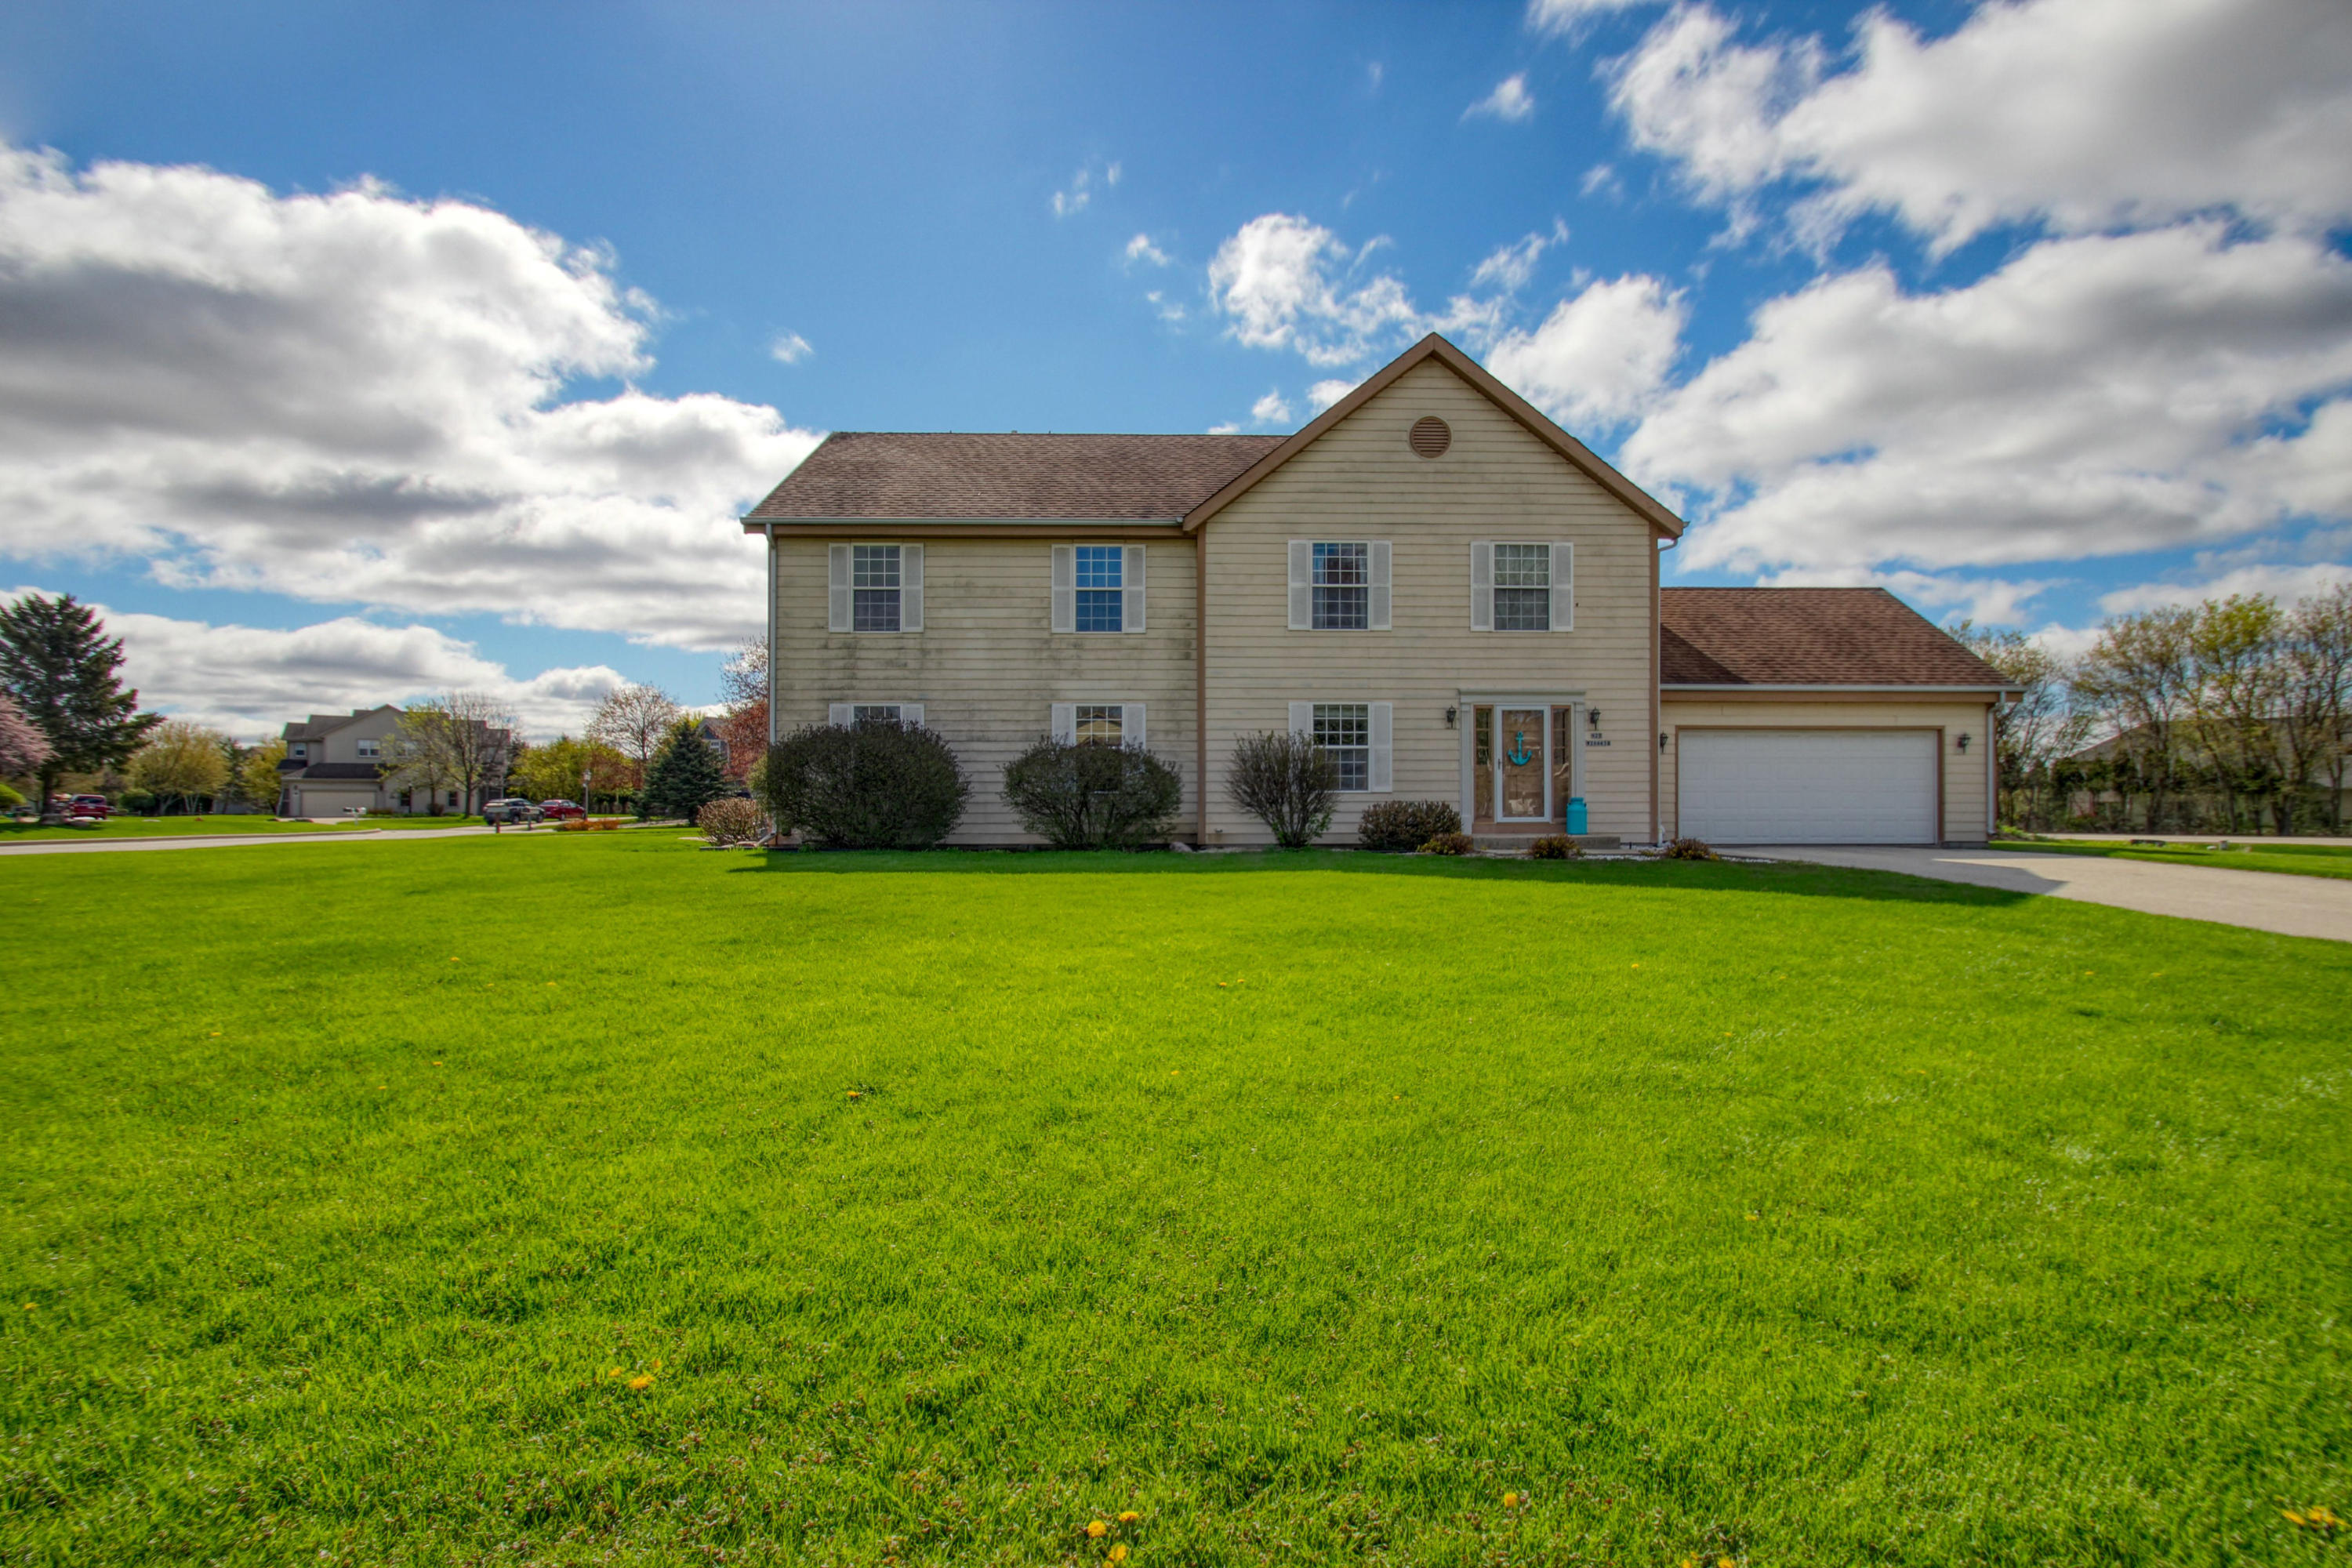 N27W26443 Christian Ct E, Pewaukee, Wisconsin 53072, 3 Bedrooms Bedrooms, ,2 BathroomsBathrooms,Condominiums,For Sale,Christian Ct E,1,1636410